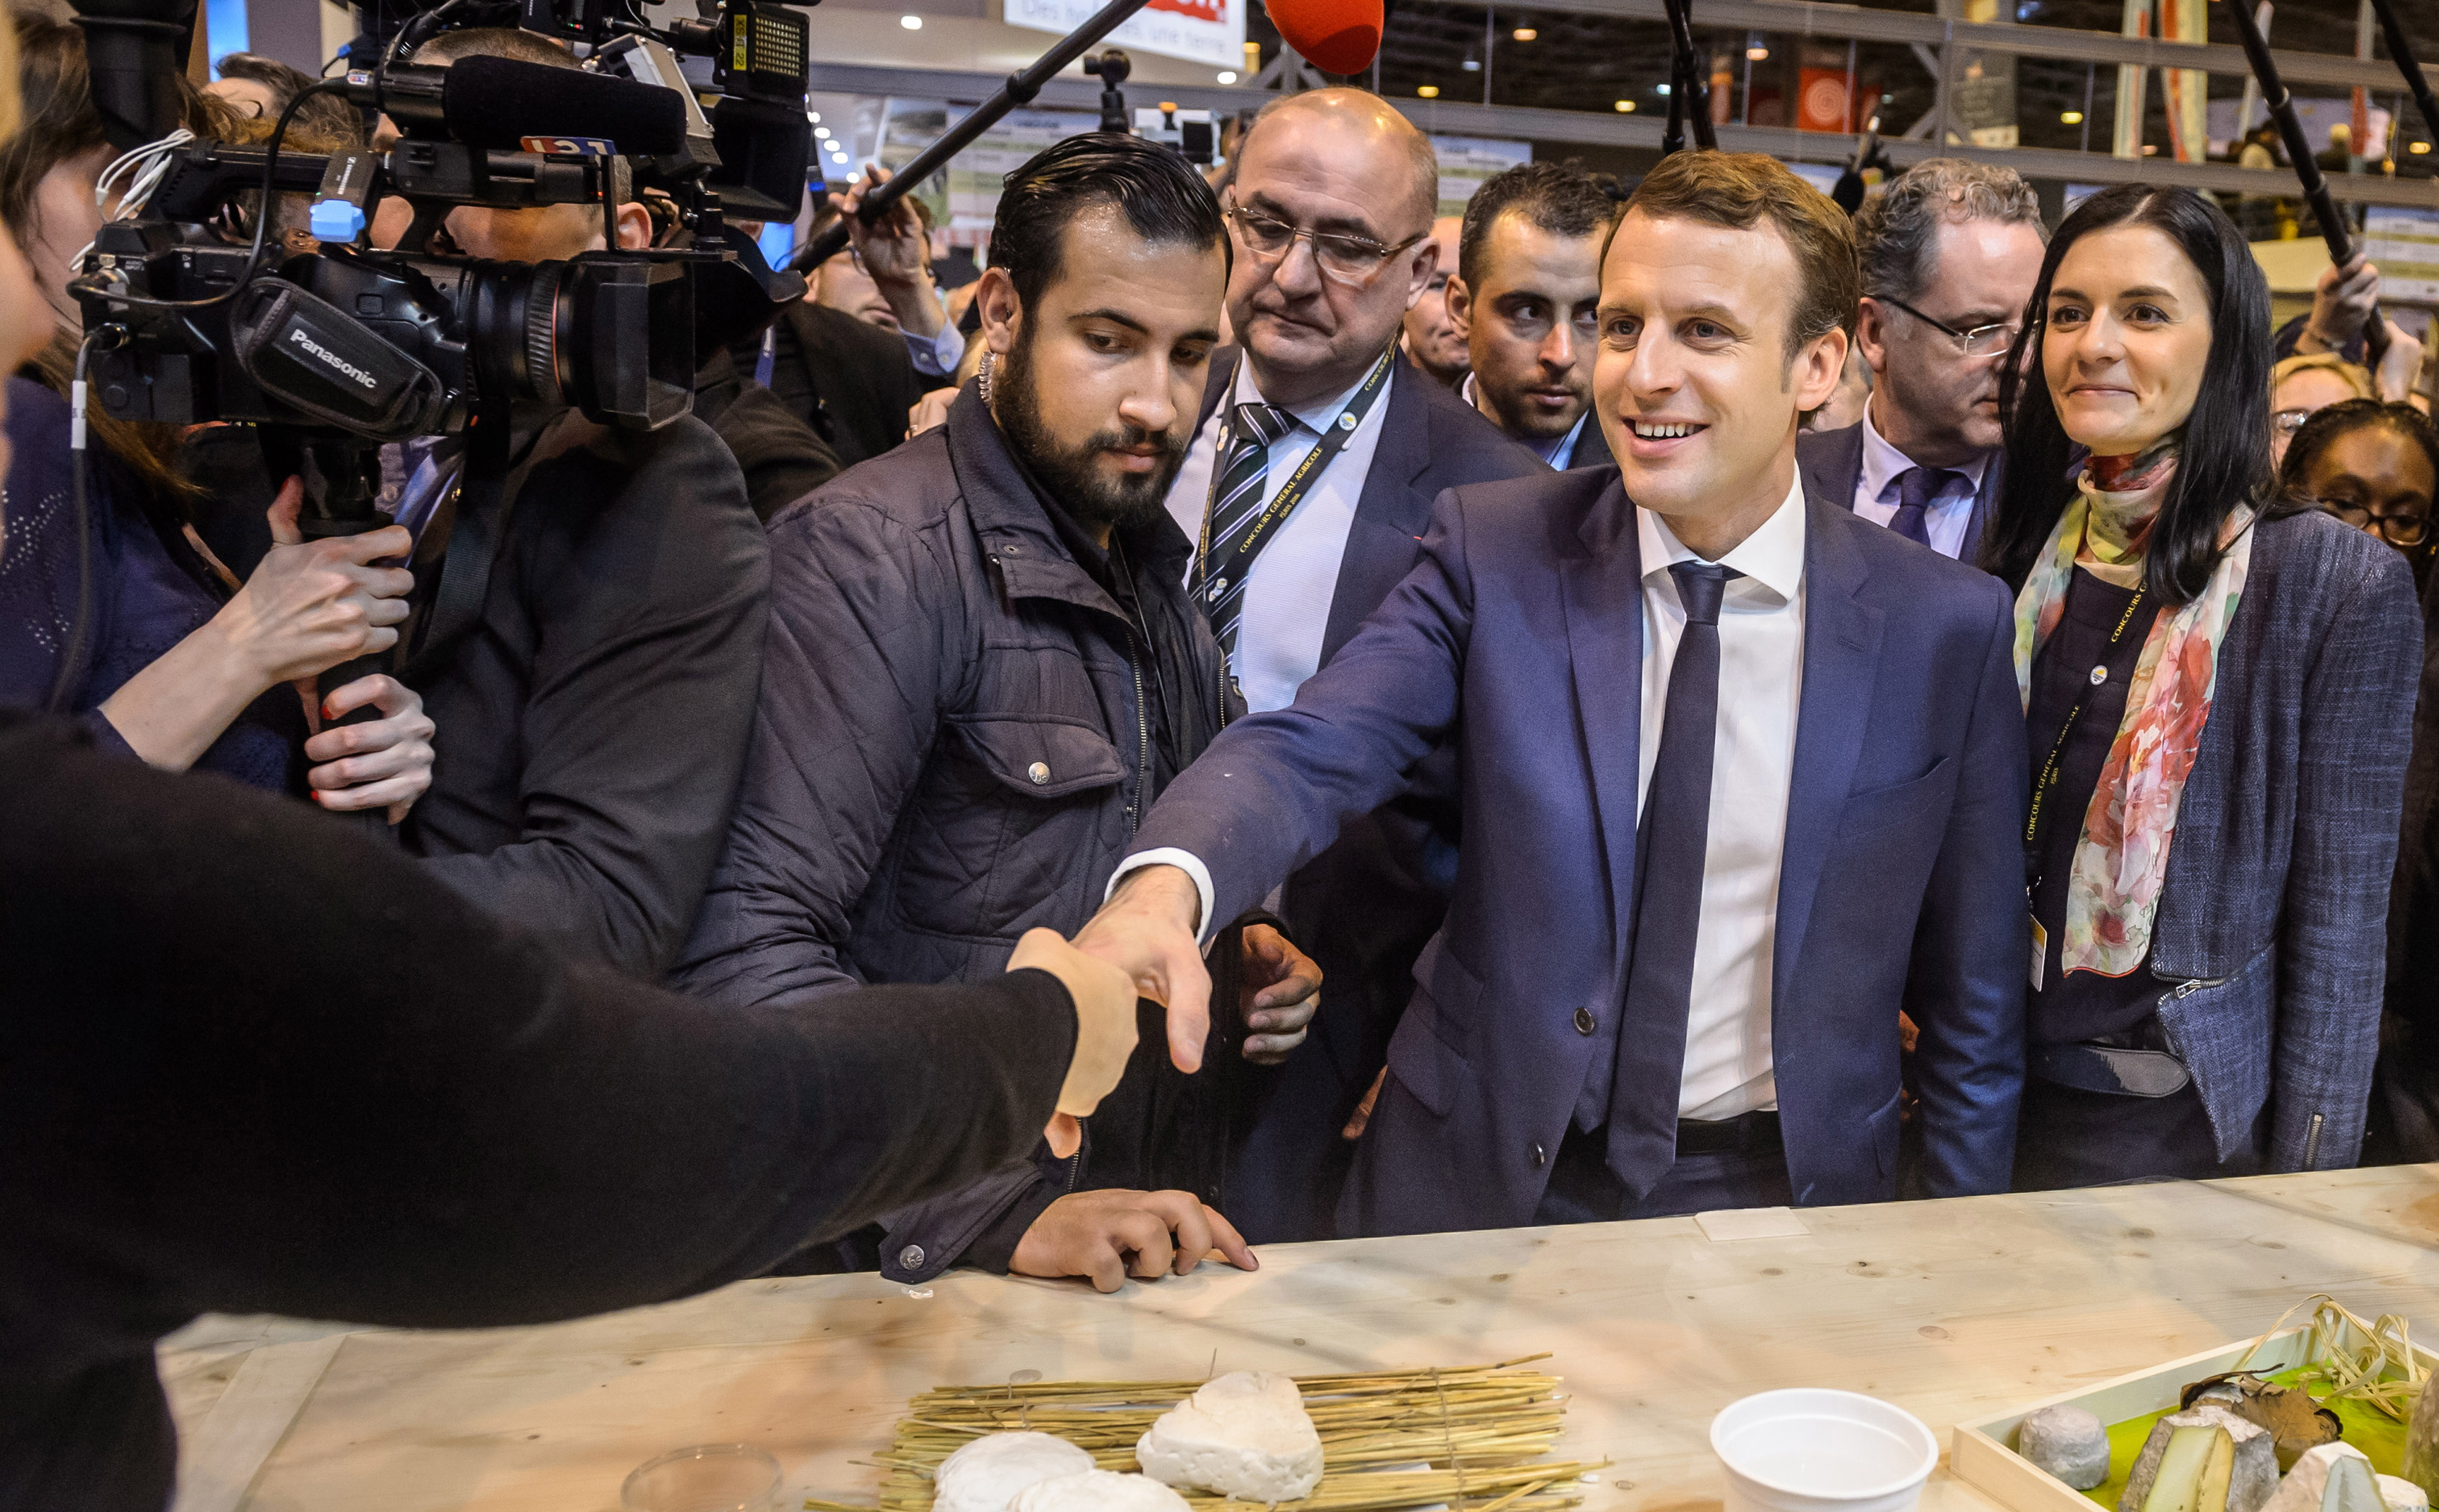 Emmanuel Macron under pressure to sack aide Alexandre Benalla for     Alexandre Benalla was in charge of security on President Macron s outings  in France but has now